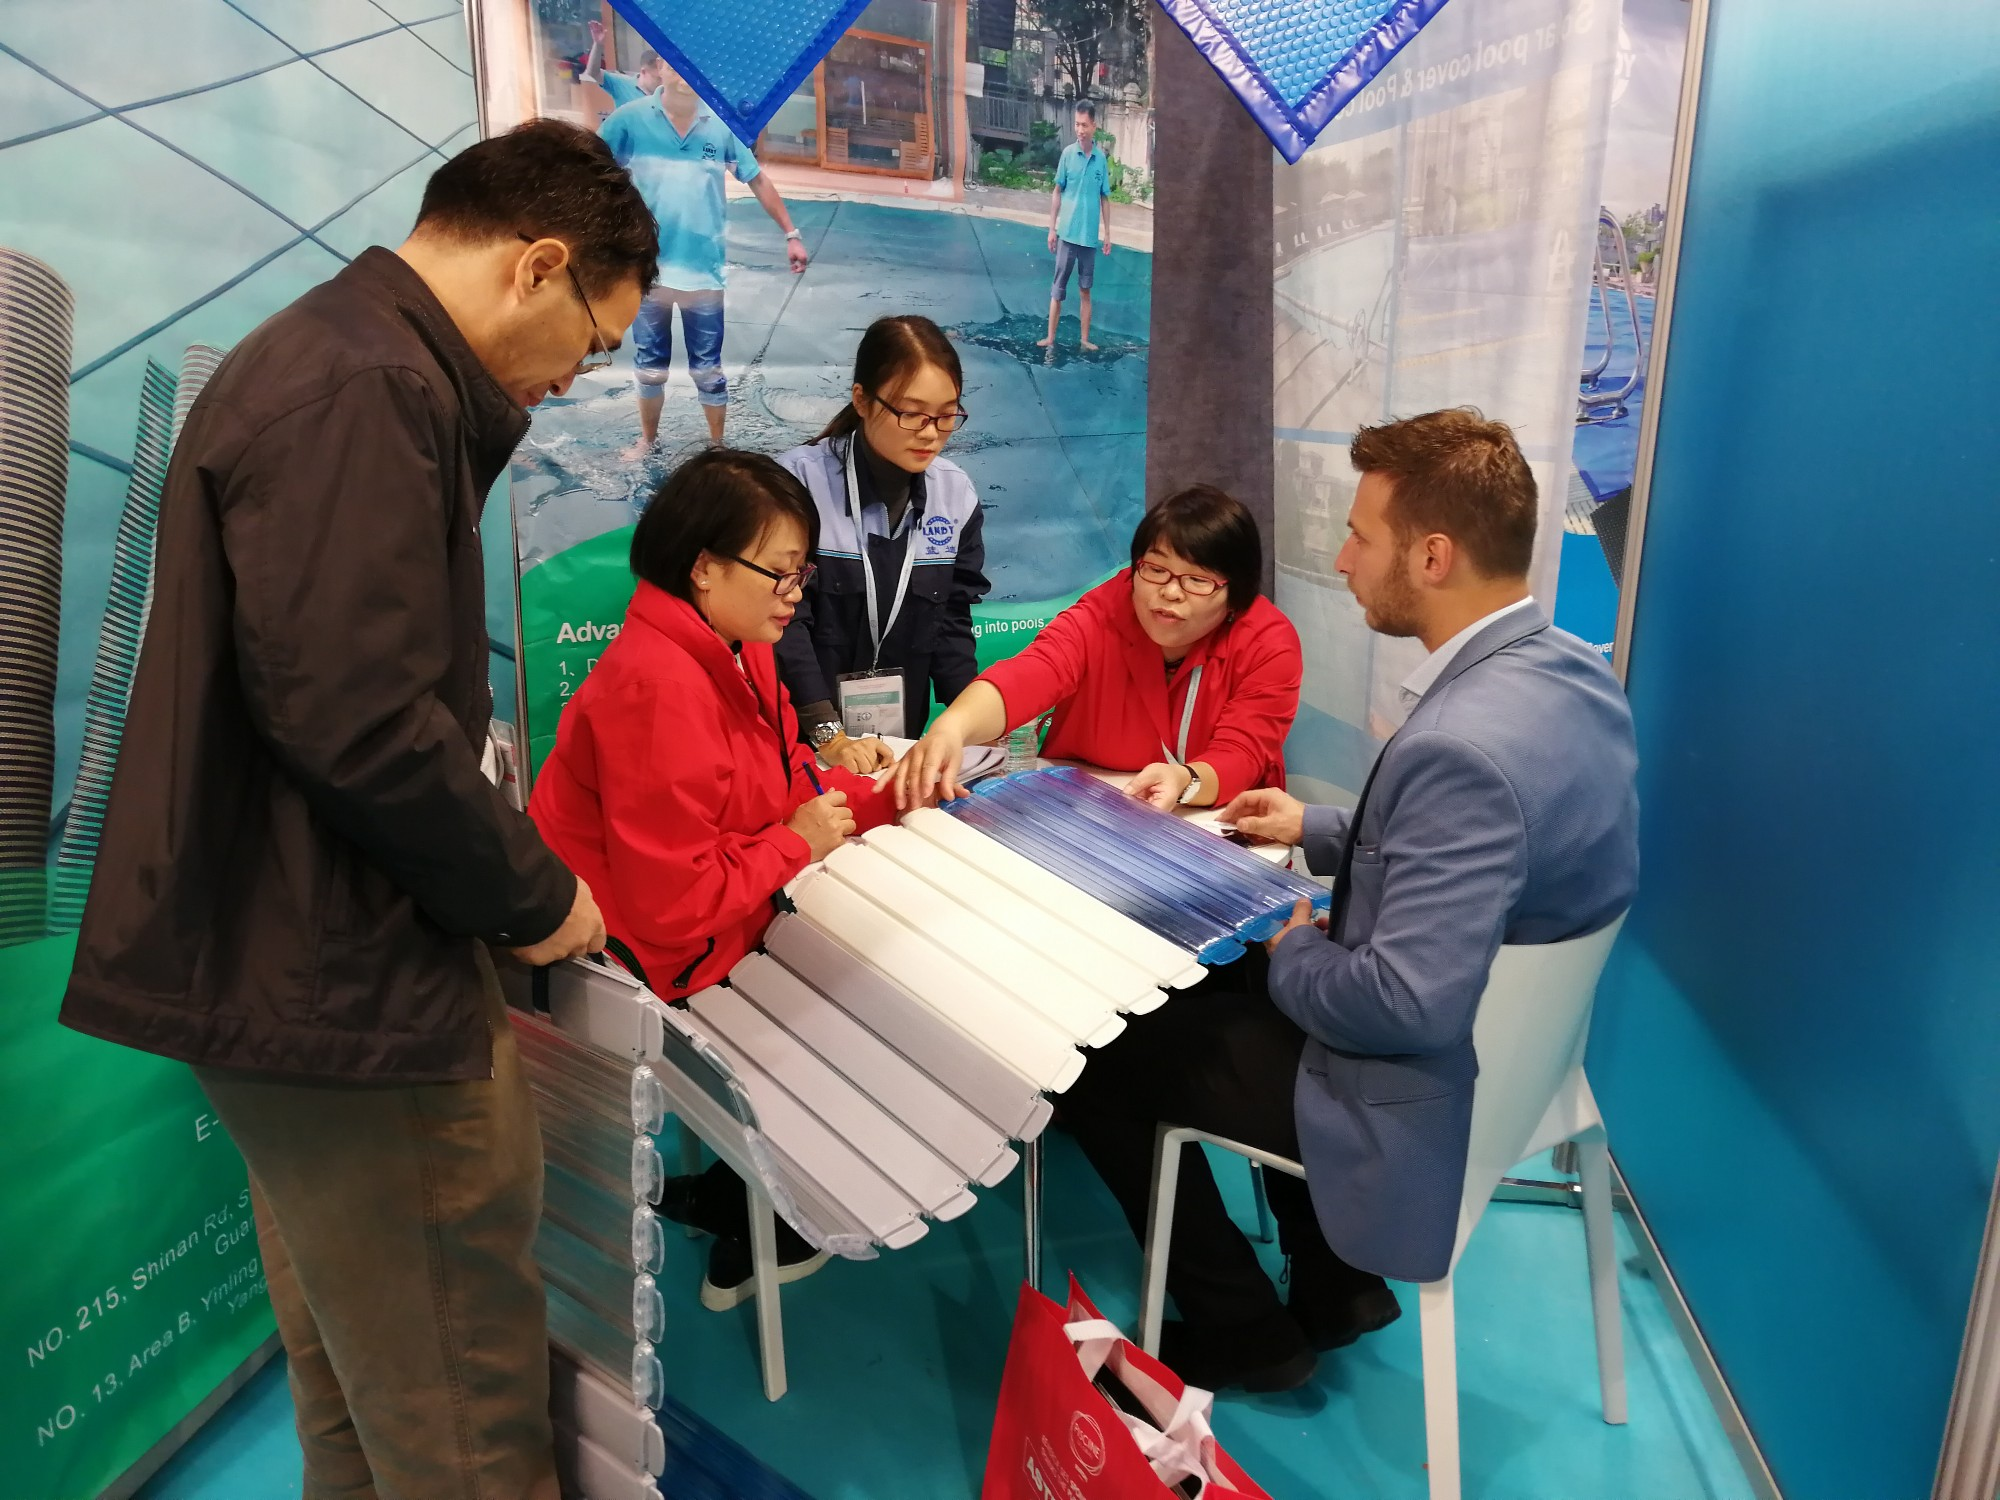 LANDY L'Audi attends the 2019 Pool Spa Expo